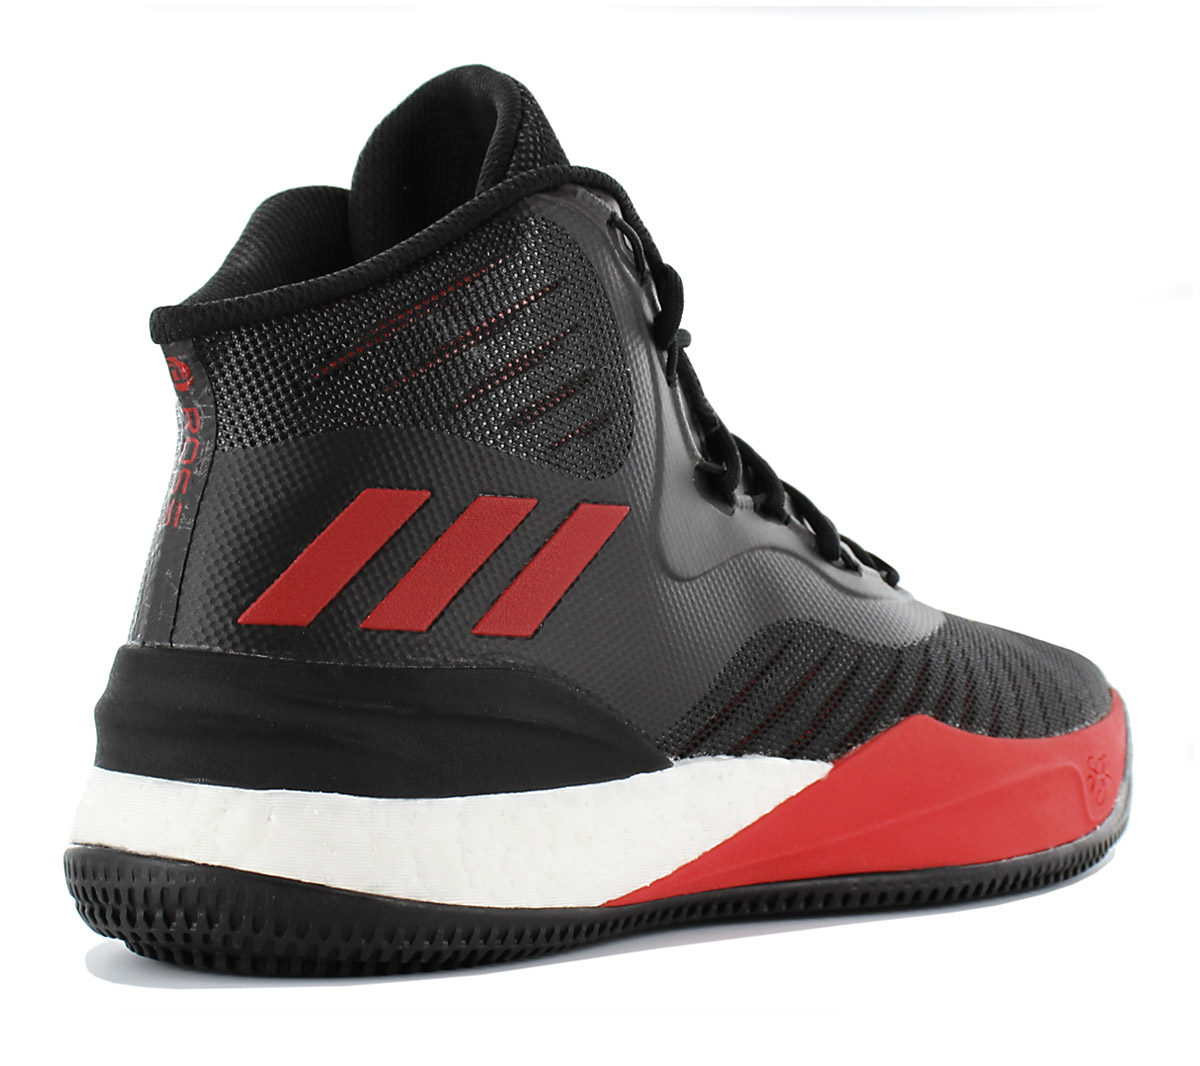 reputable site 4811a 0e5c6 Adidas D Derrick Rose 8 Boost Men s Basketballshoe Shoes Black ...